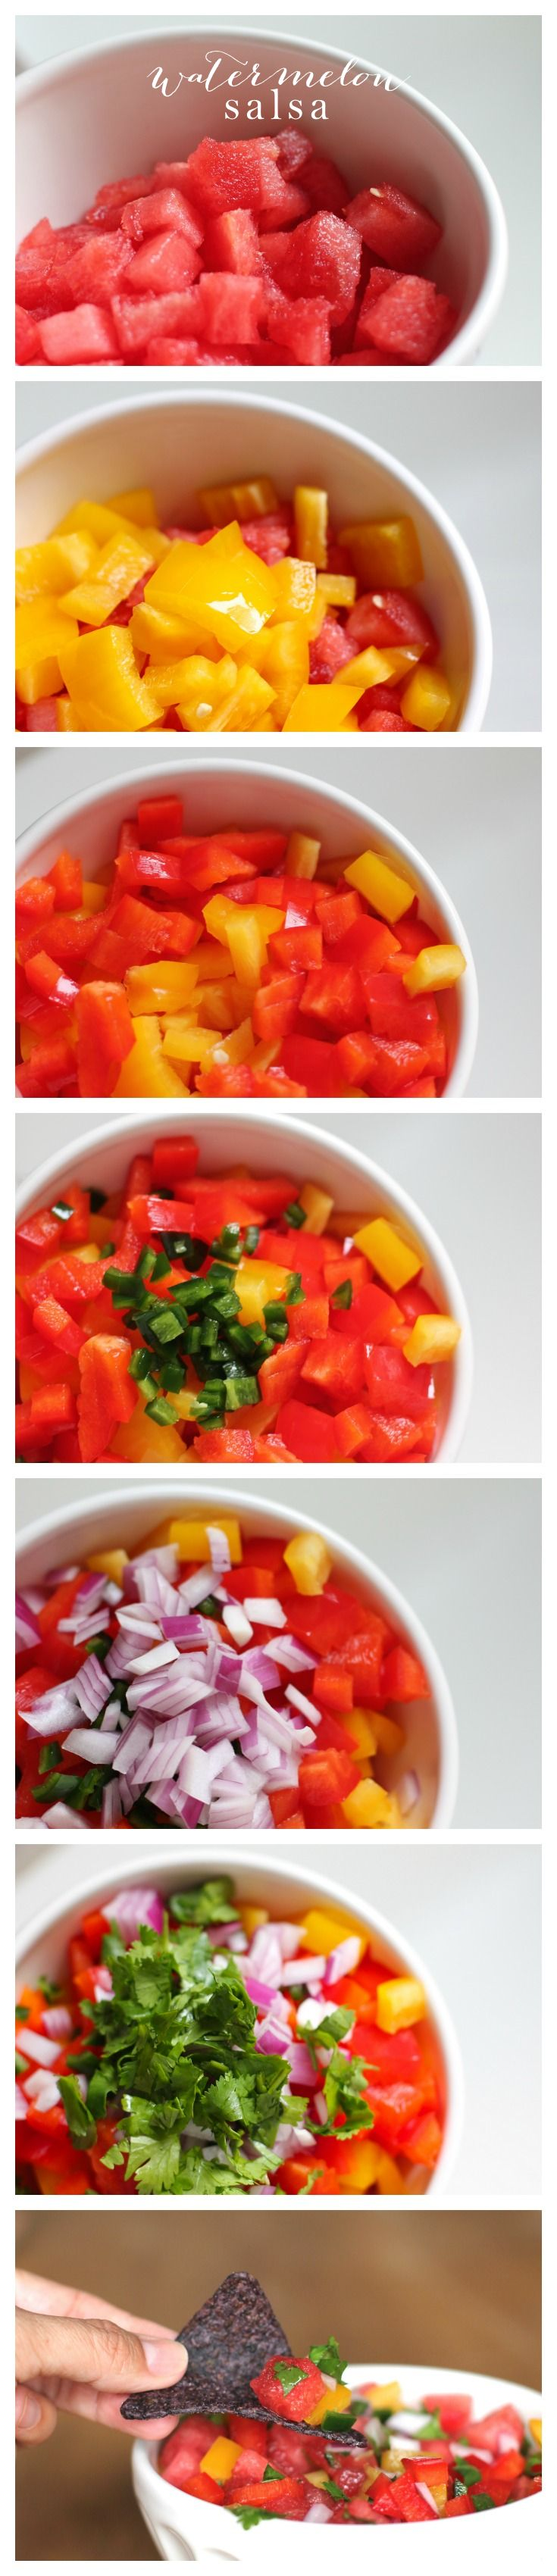 Refreshing & flavorful watermelon salsa recipe. Add it to chicken, salads, tacos & more!